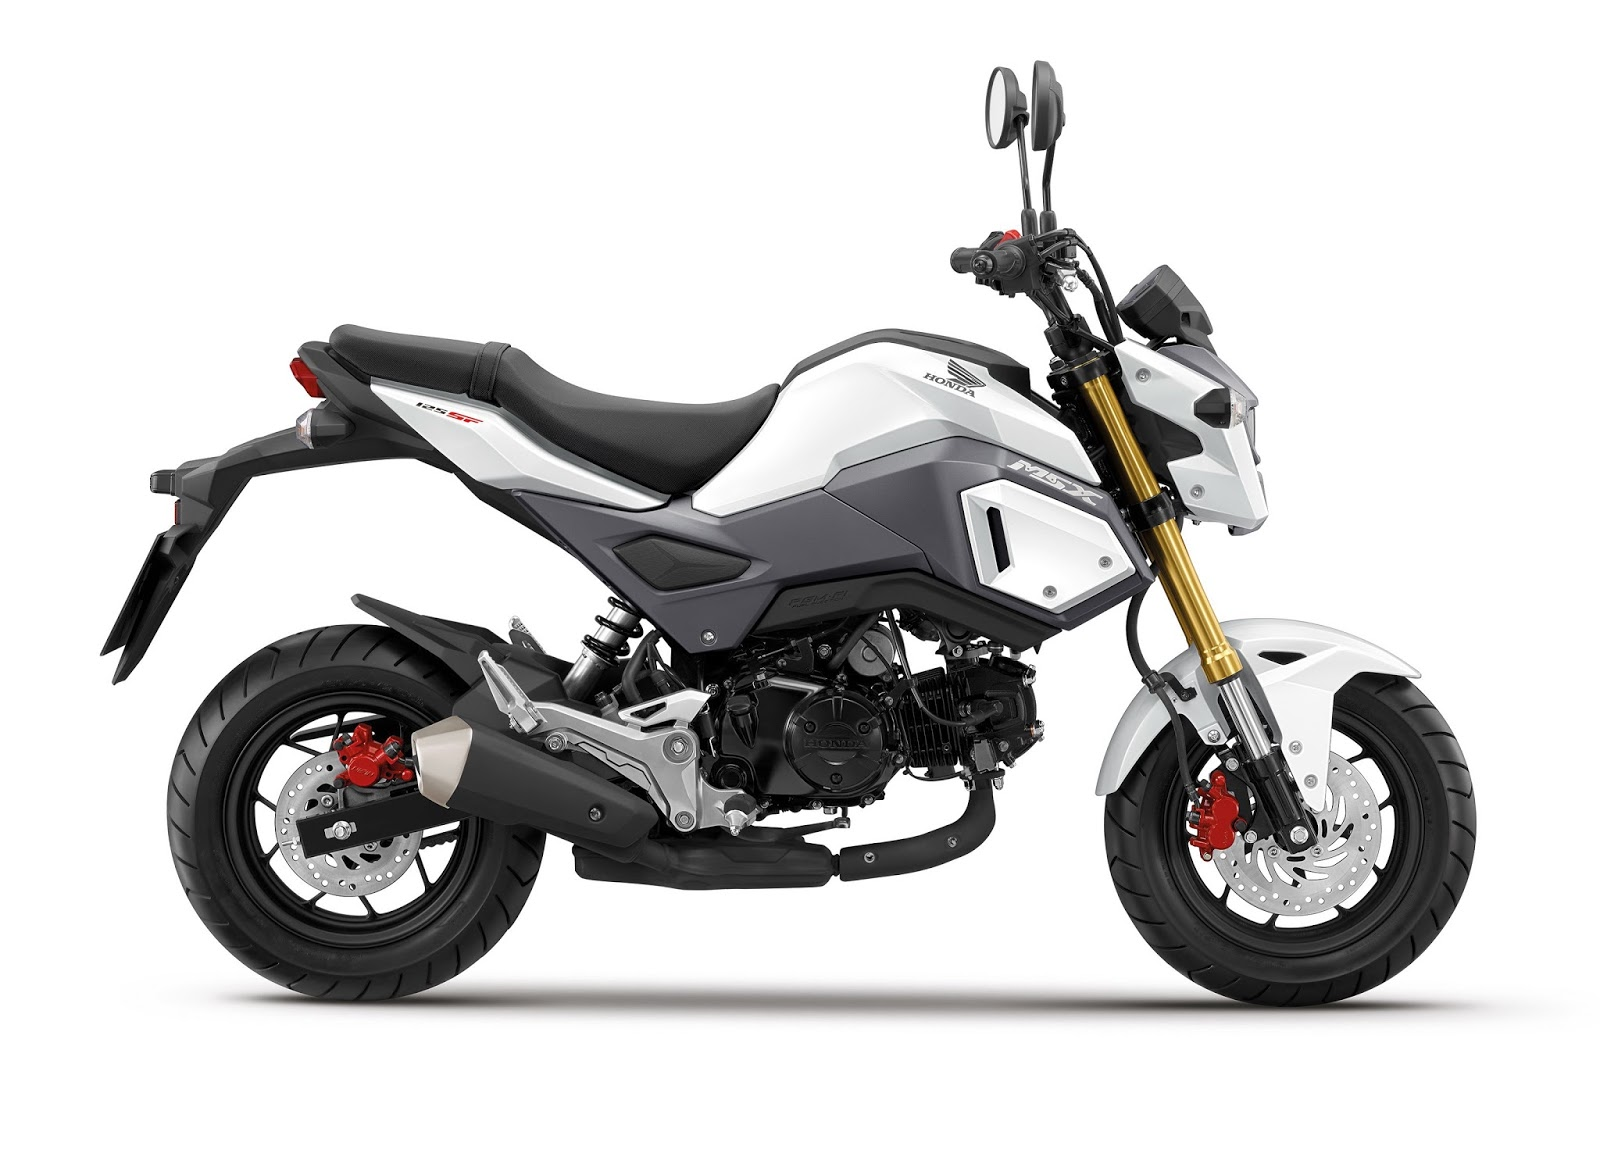 Top 5 Overrated Motorcycles Revvin The 417 Motorcycle Spot Honda Grom Wiring Diagram Has Become Wildly Popular After Its Debut In 2014 It Is Becoming Second Bike Of Choice For All Those R6 Owners